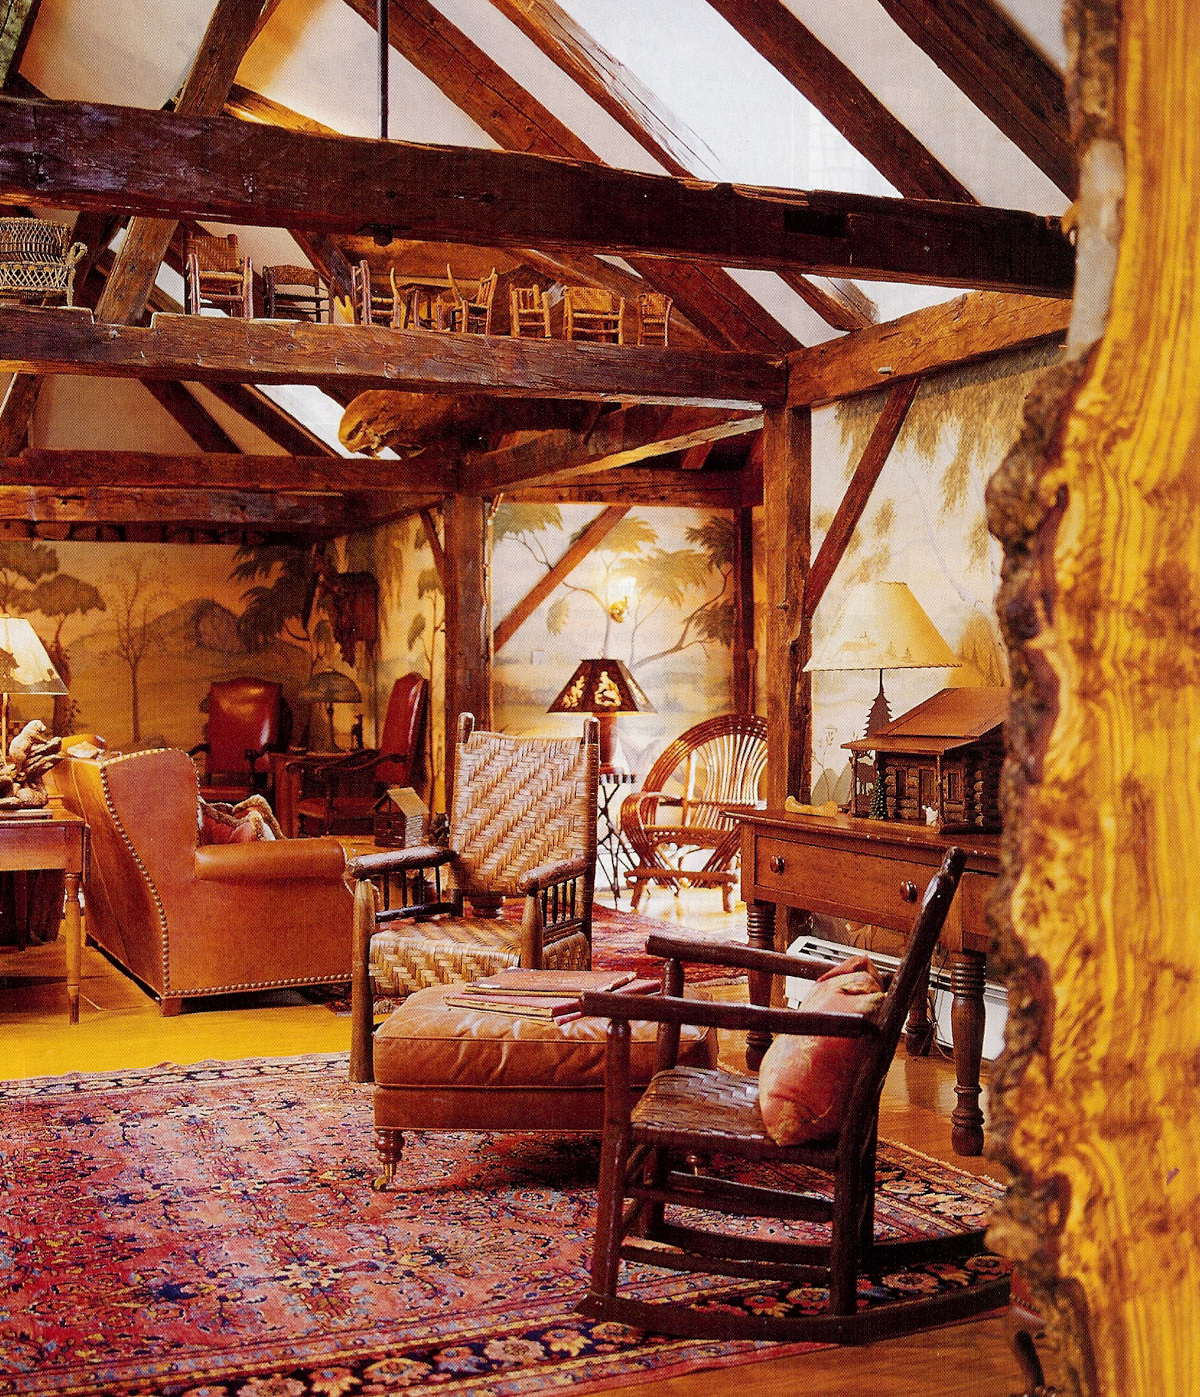 fishing camp - sitting room with rockers, leather sofa and faux-painted walls - Country Living via Atticmag